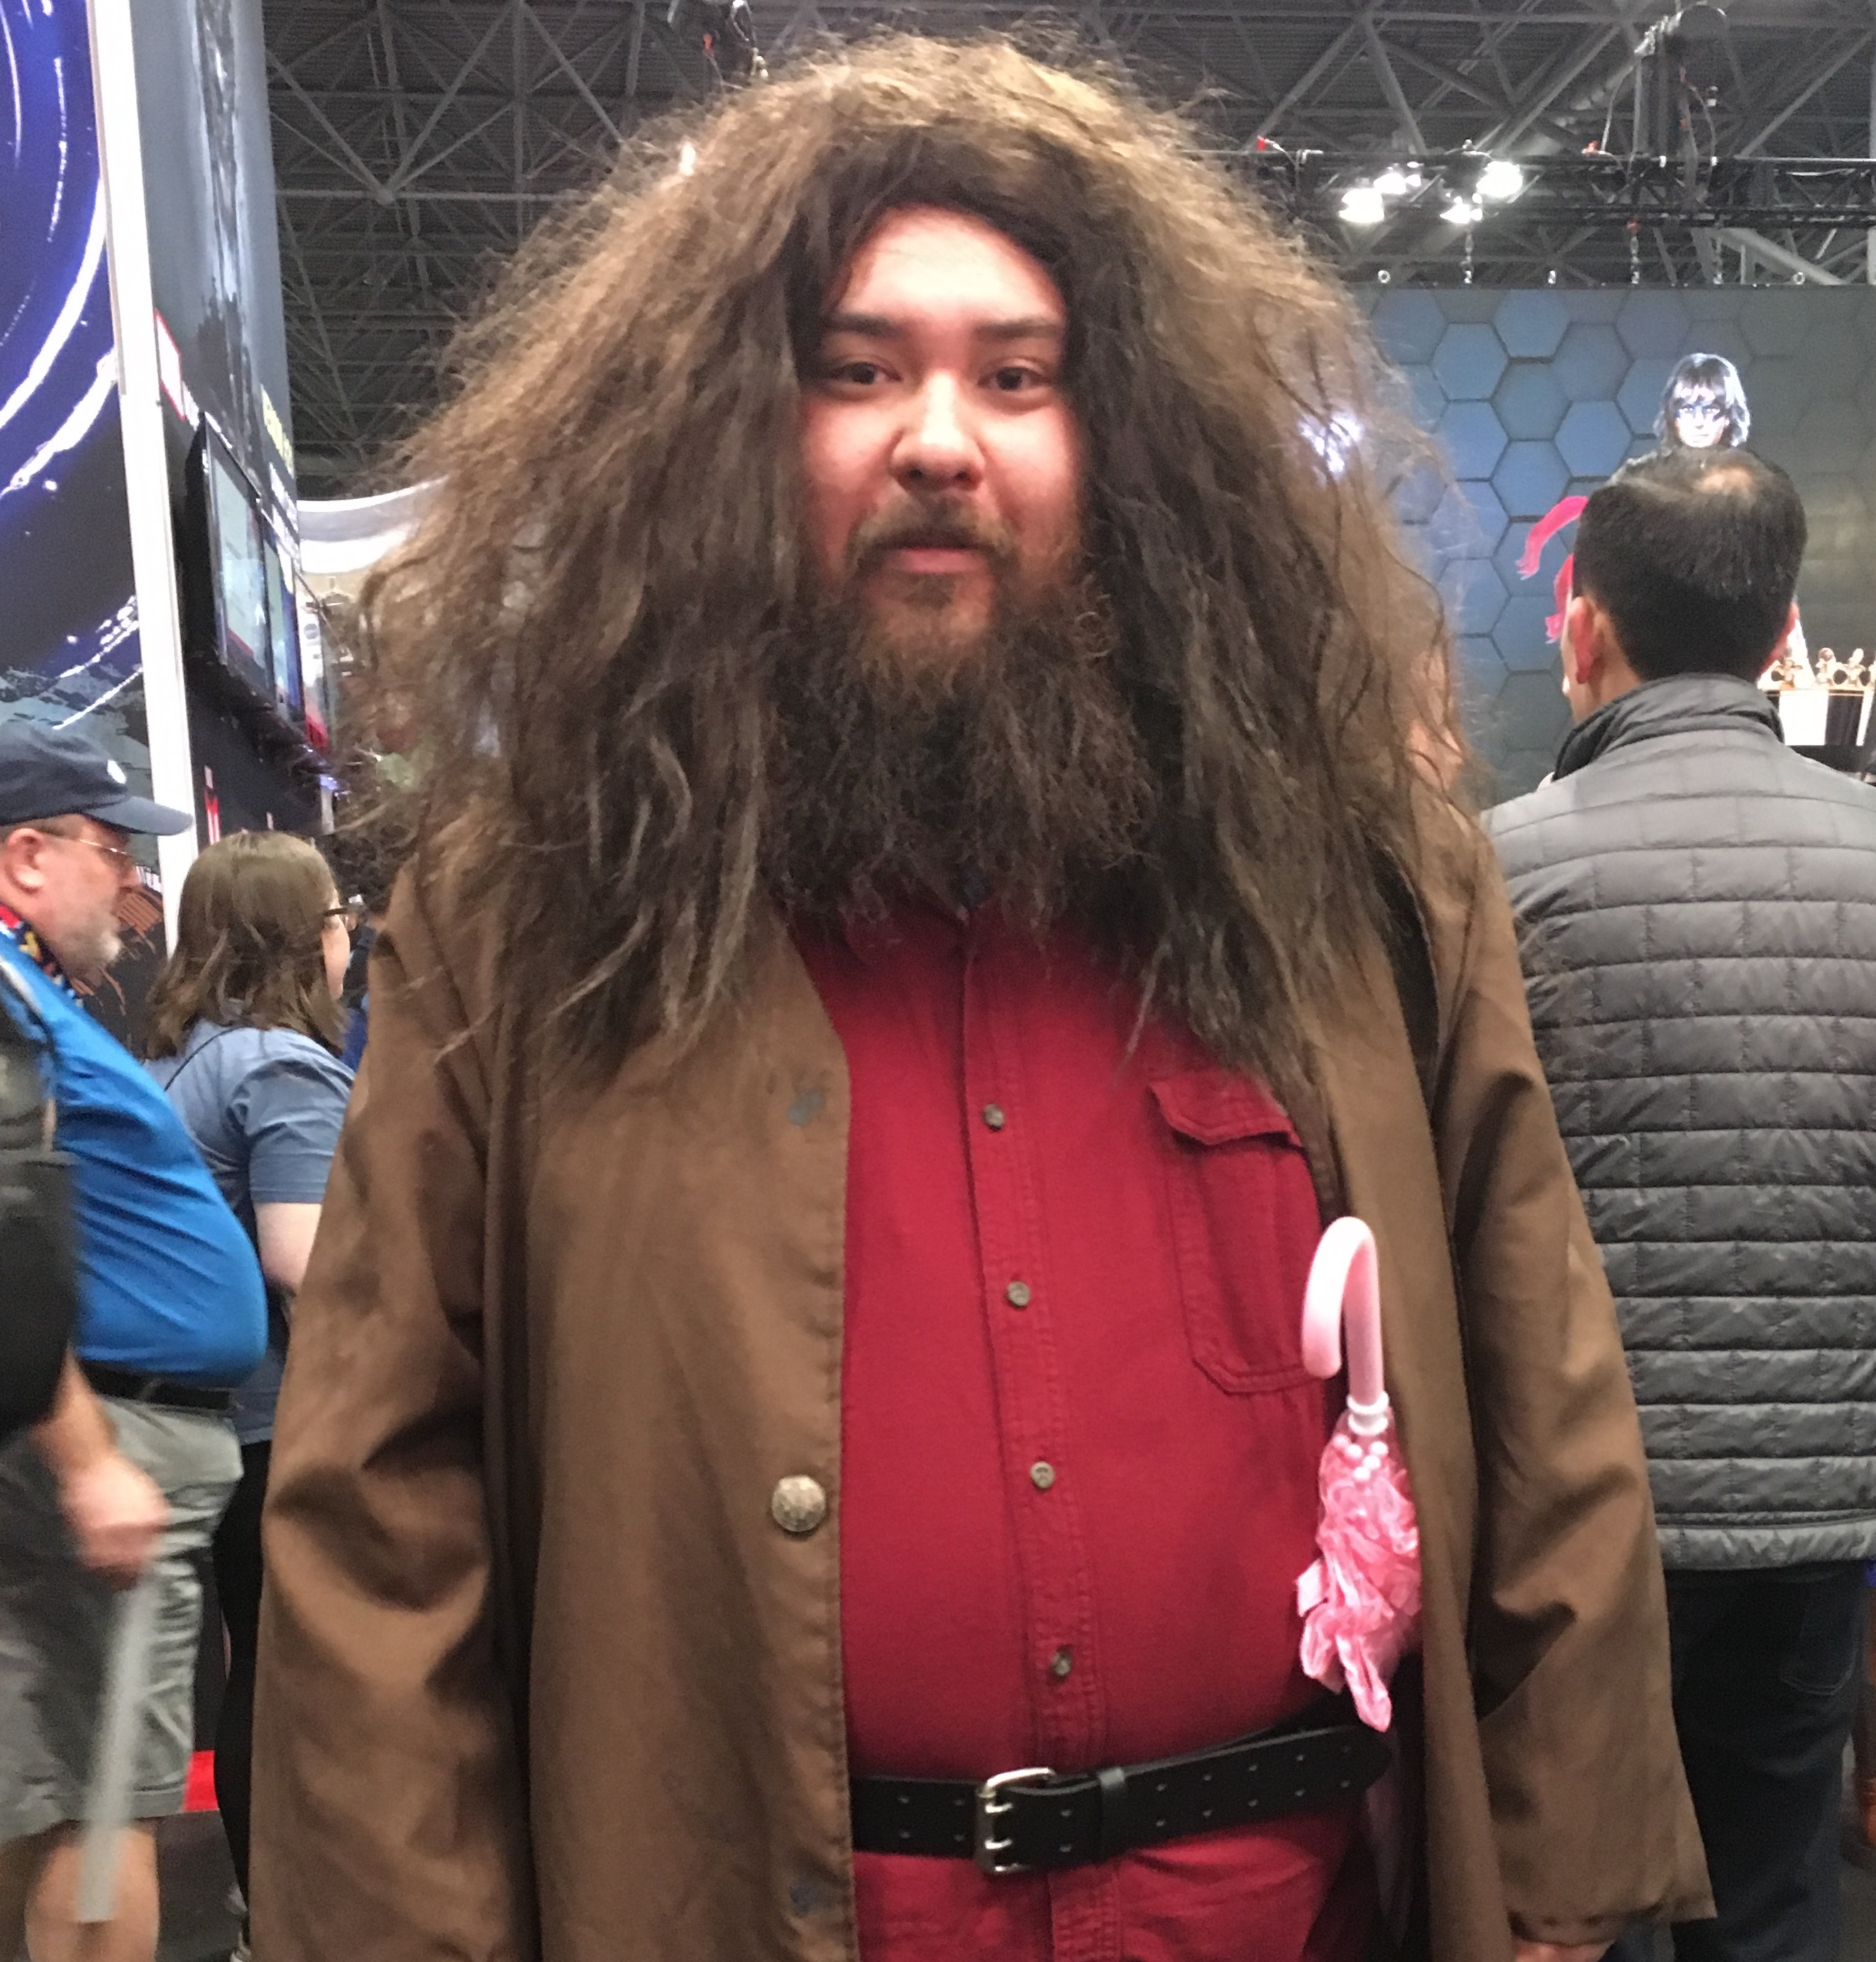 This Rubeus Hagrid cosplay at New York Comic Con even has a flowery pink umbrella!